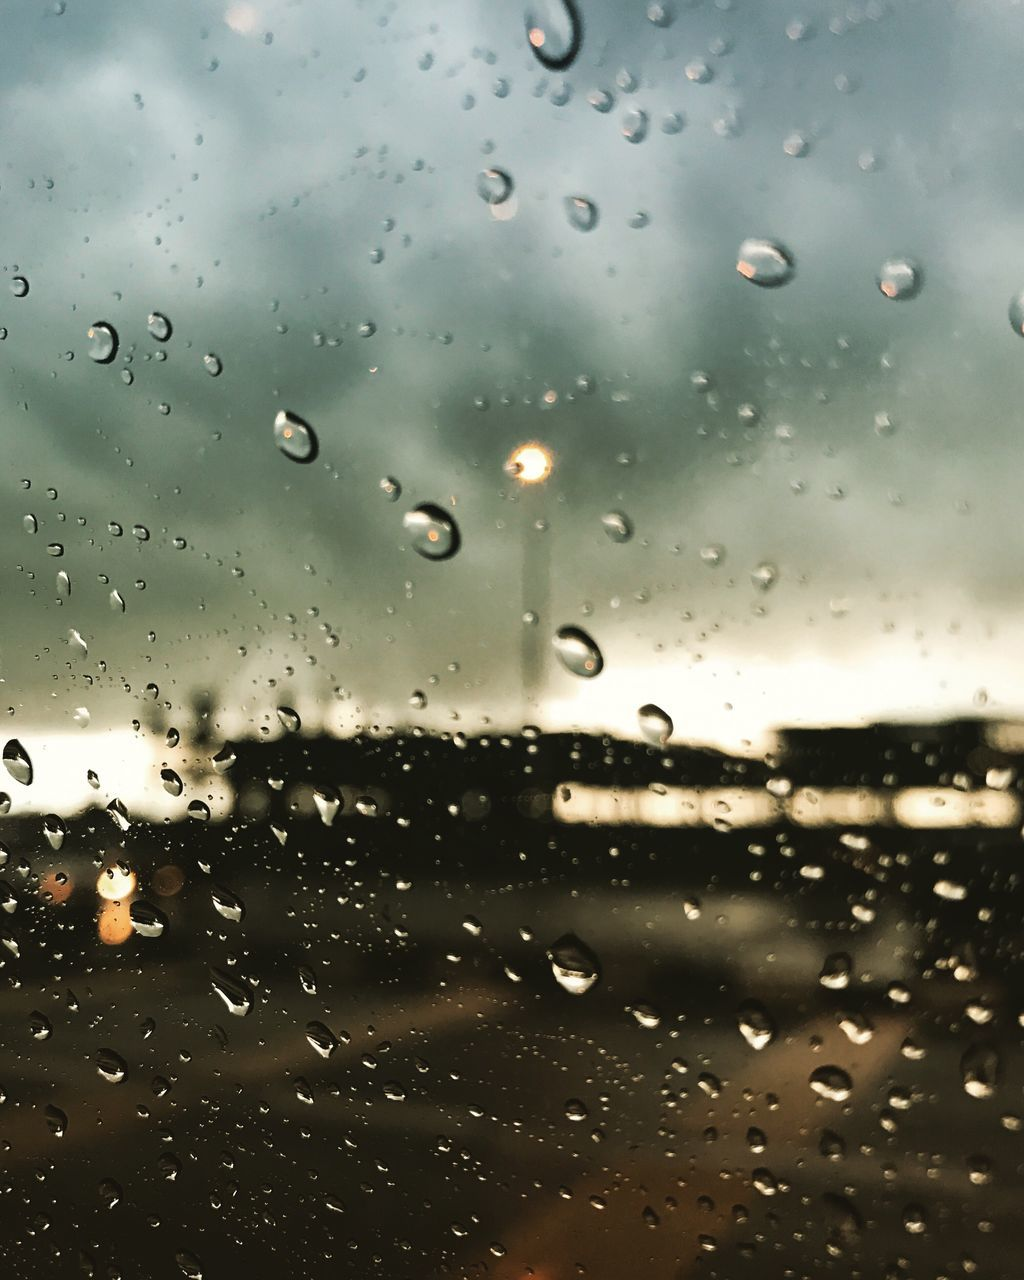 drop, window, glass - material, wet, rain, no people, water, raindrop, weather, indoors, close-up, focus on foreground, land vehicle, full frame, backgrounds, day, nature, sky, freshness